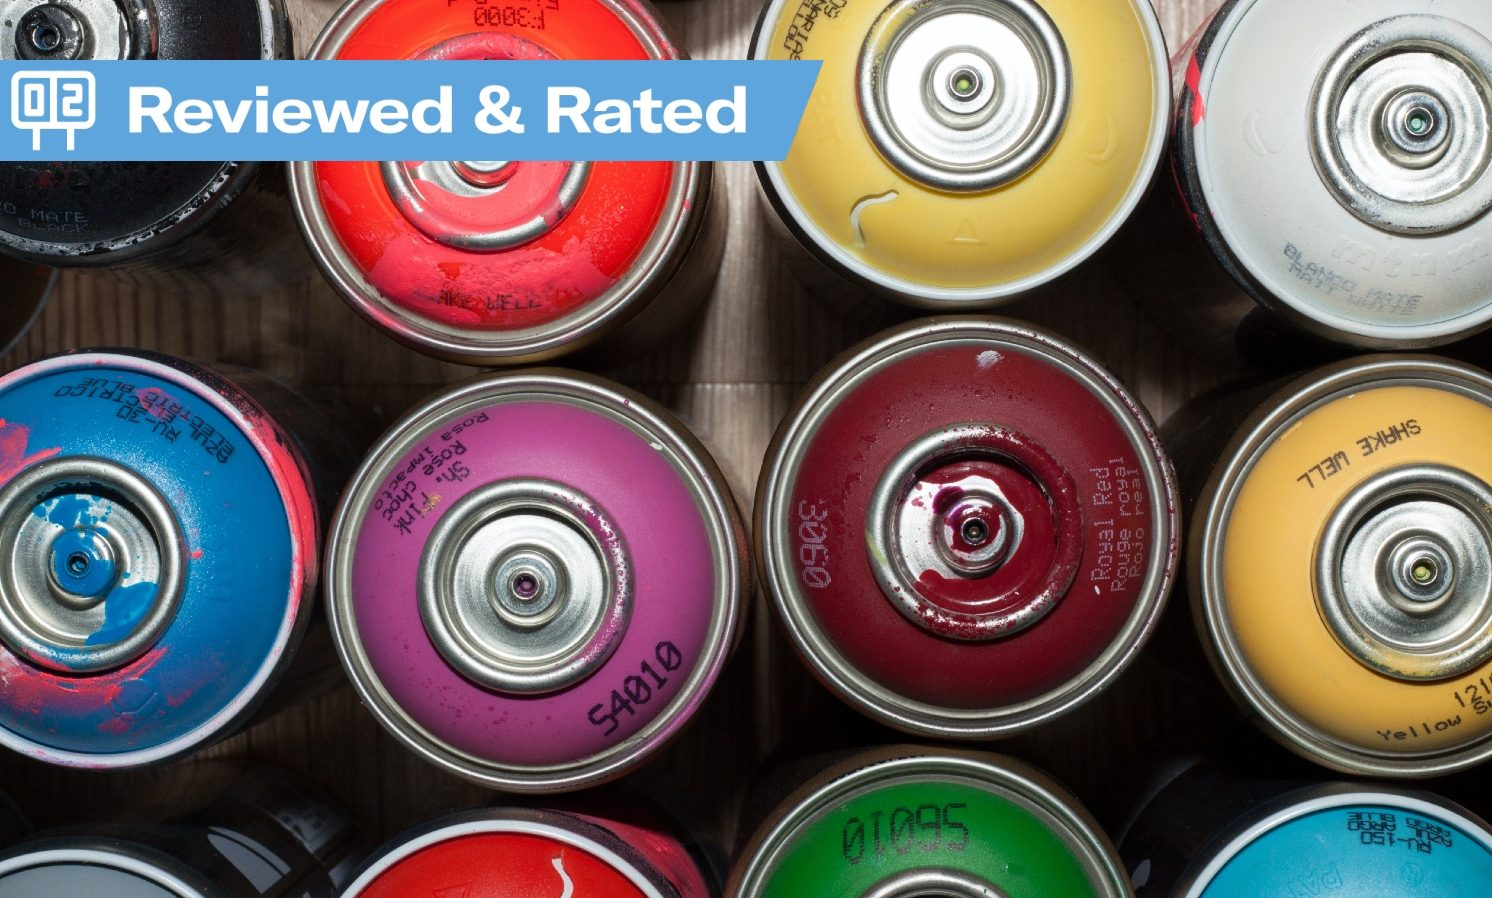 Reviewed & Rated: Aerosol paint cans for cars